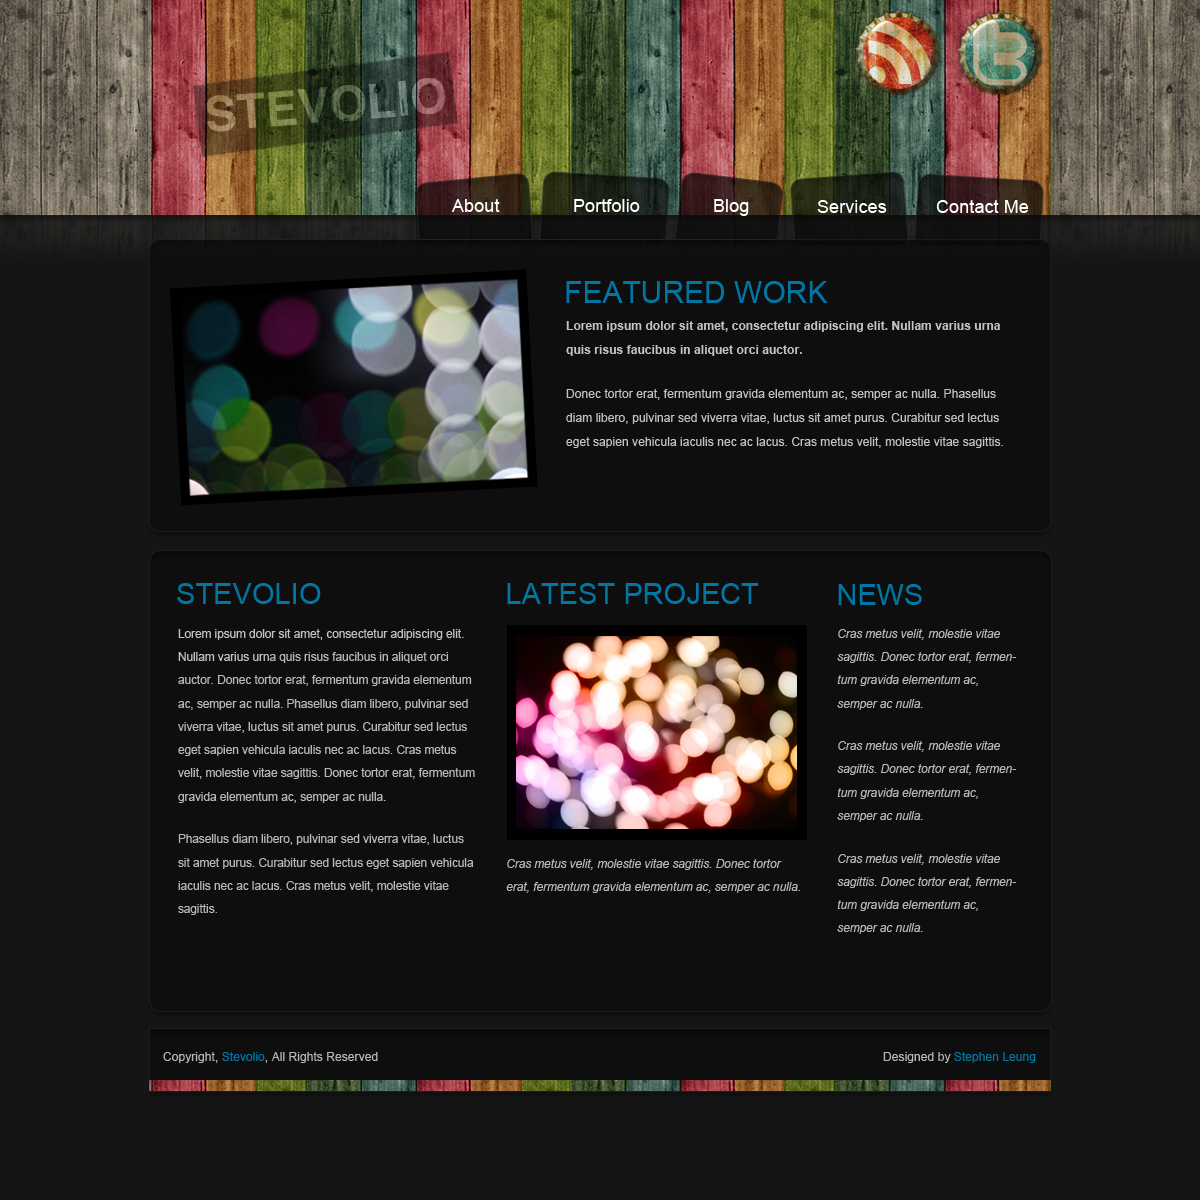 Web layout design portfolio by chibone on deviantart for Home page design ideas